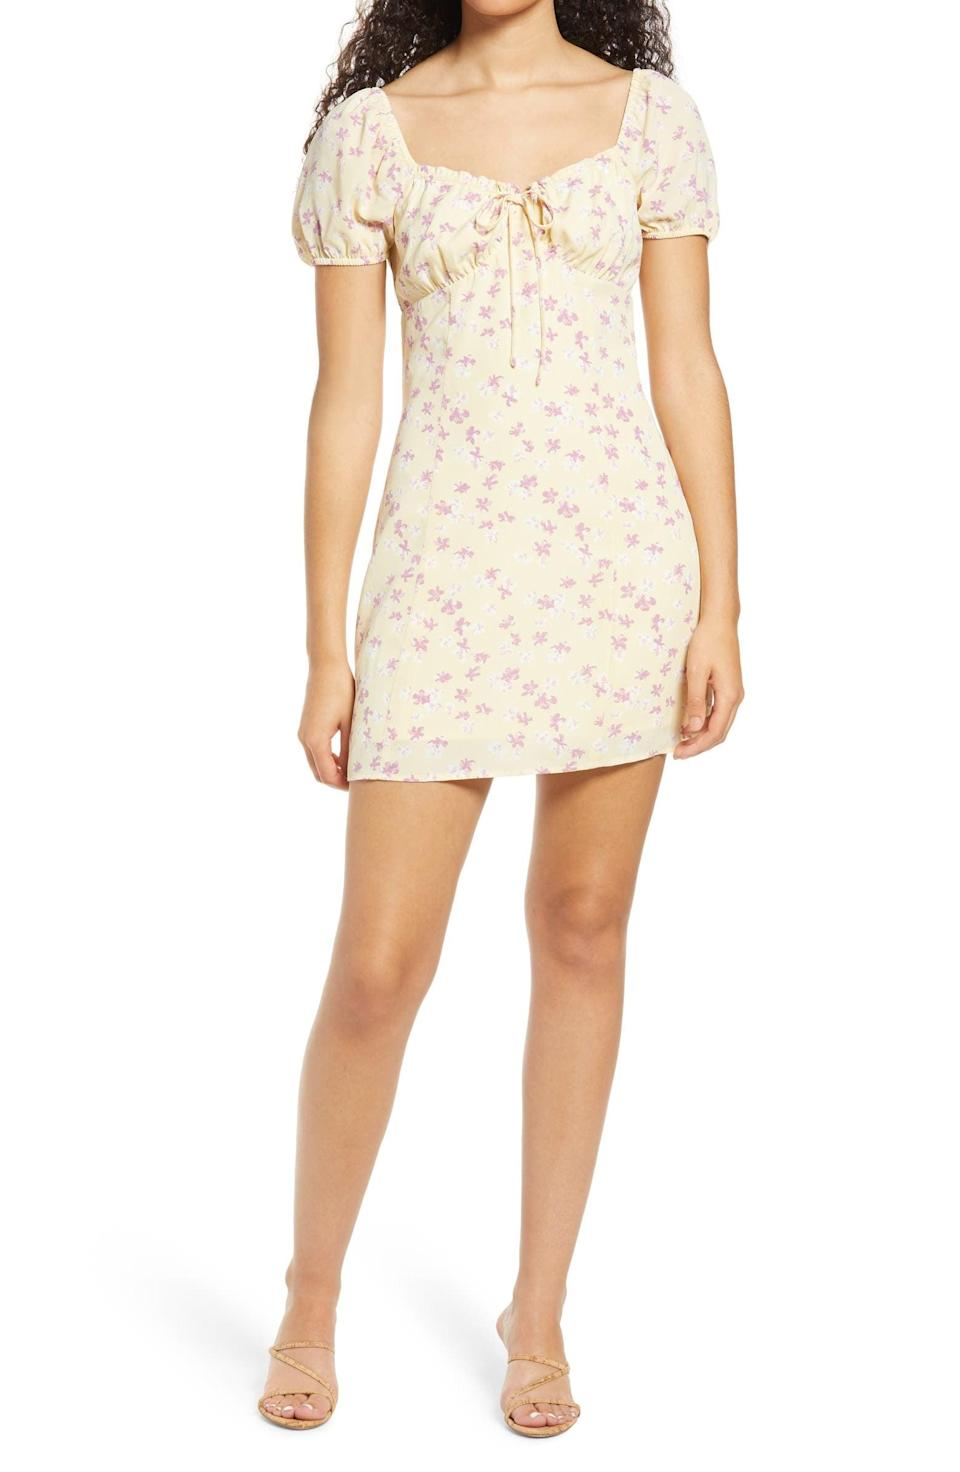 <p>This <span>All in Favor Floral Tie Front Minidress</span> ($20, originally $49) is a guaranteed crowd pleaser.</p>